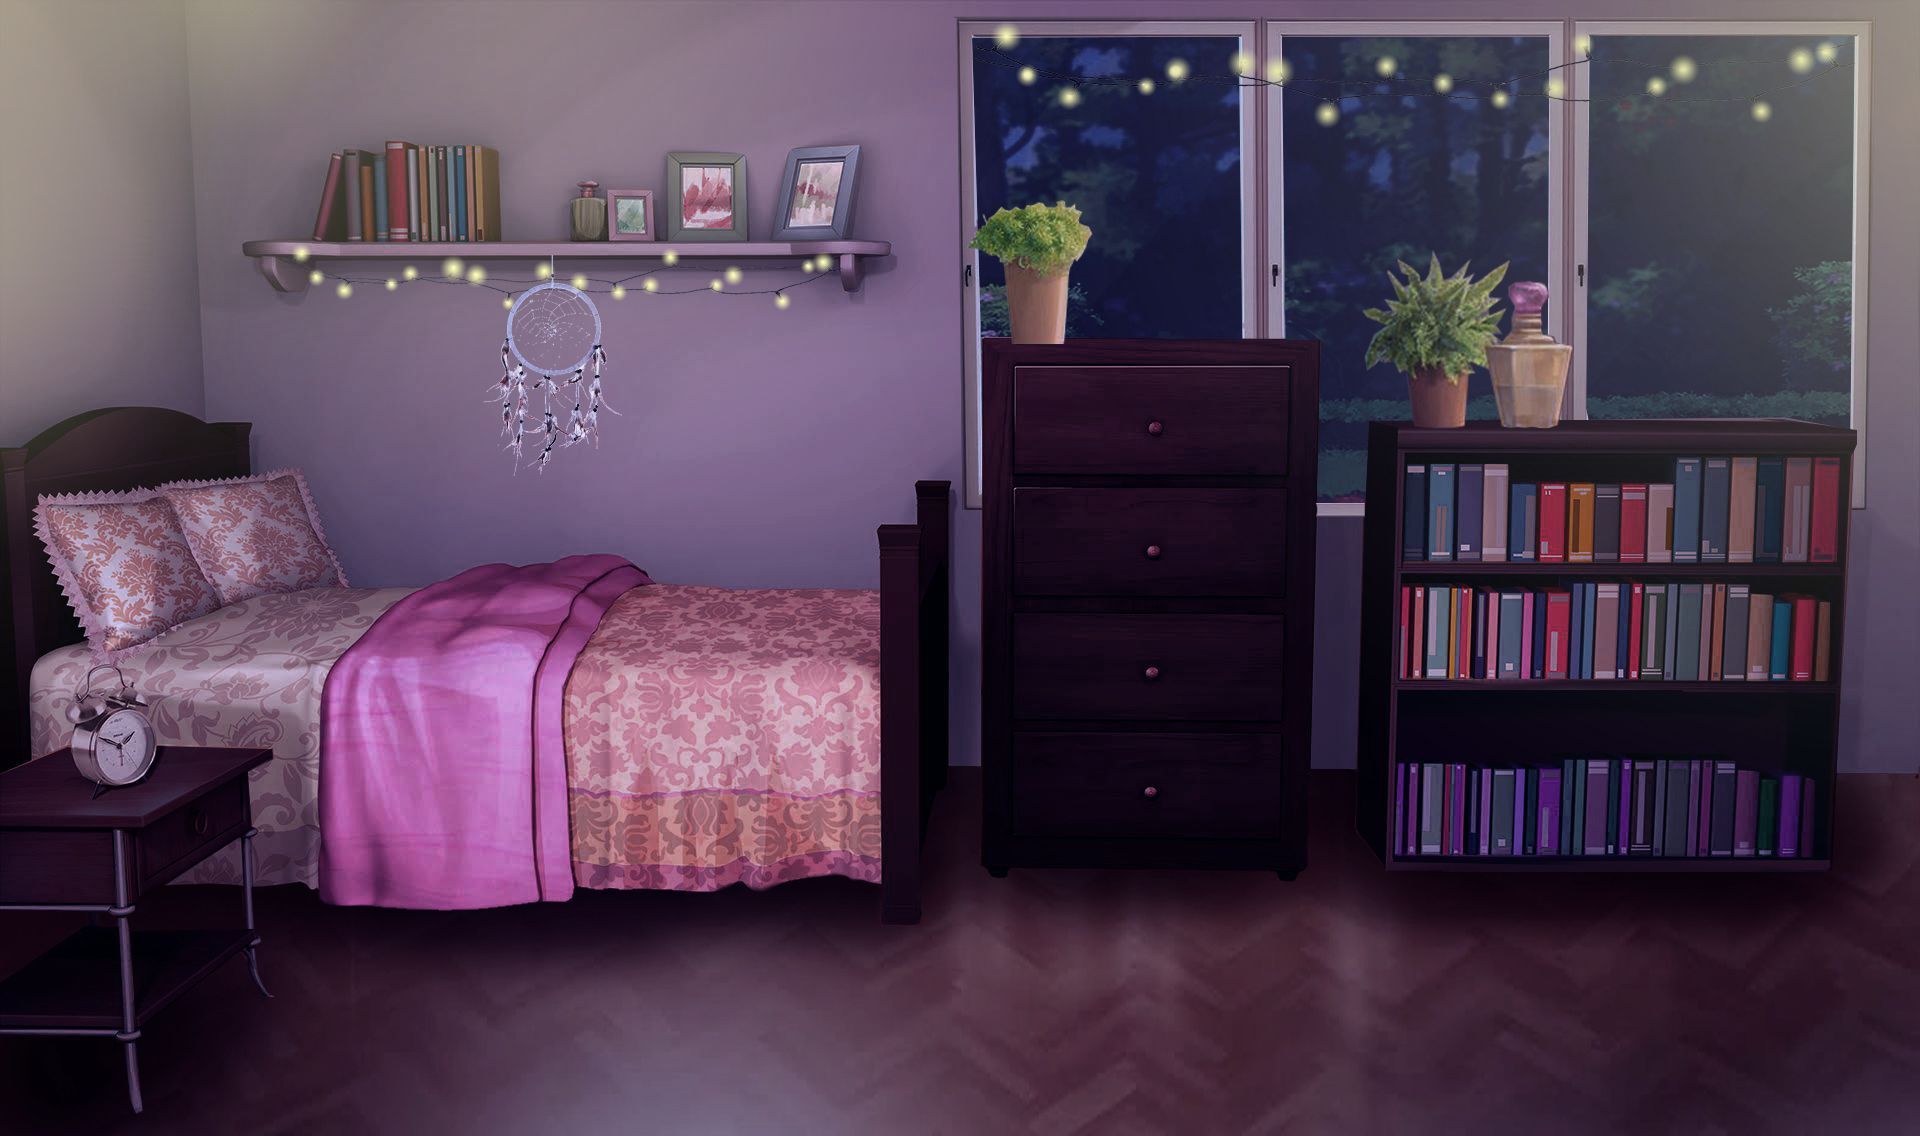 Anime Bedroom Background Night Anime Bedroom Background Living Room Background Bedroom Designs Images Anime Backgrounds Wallpapers Bedroom night time background